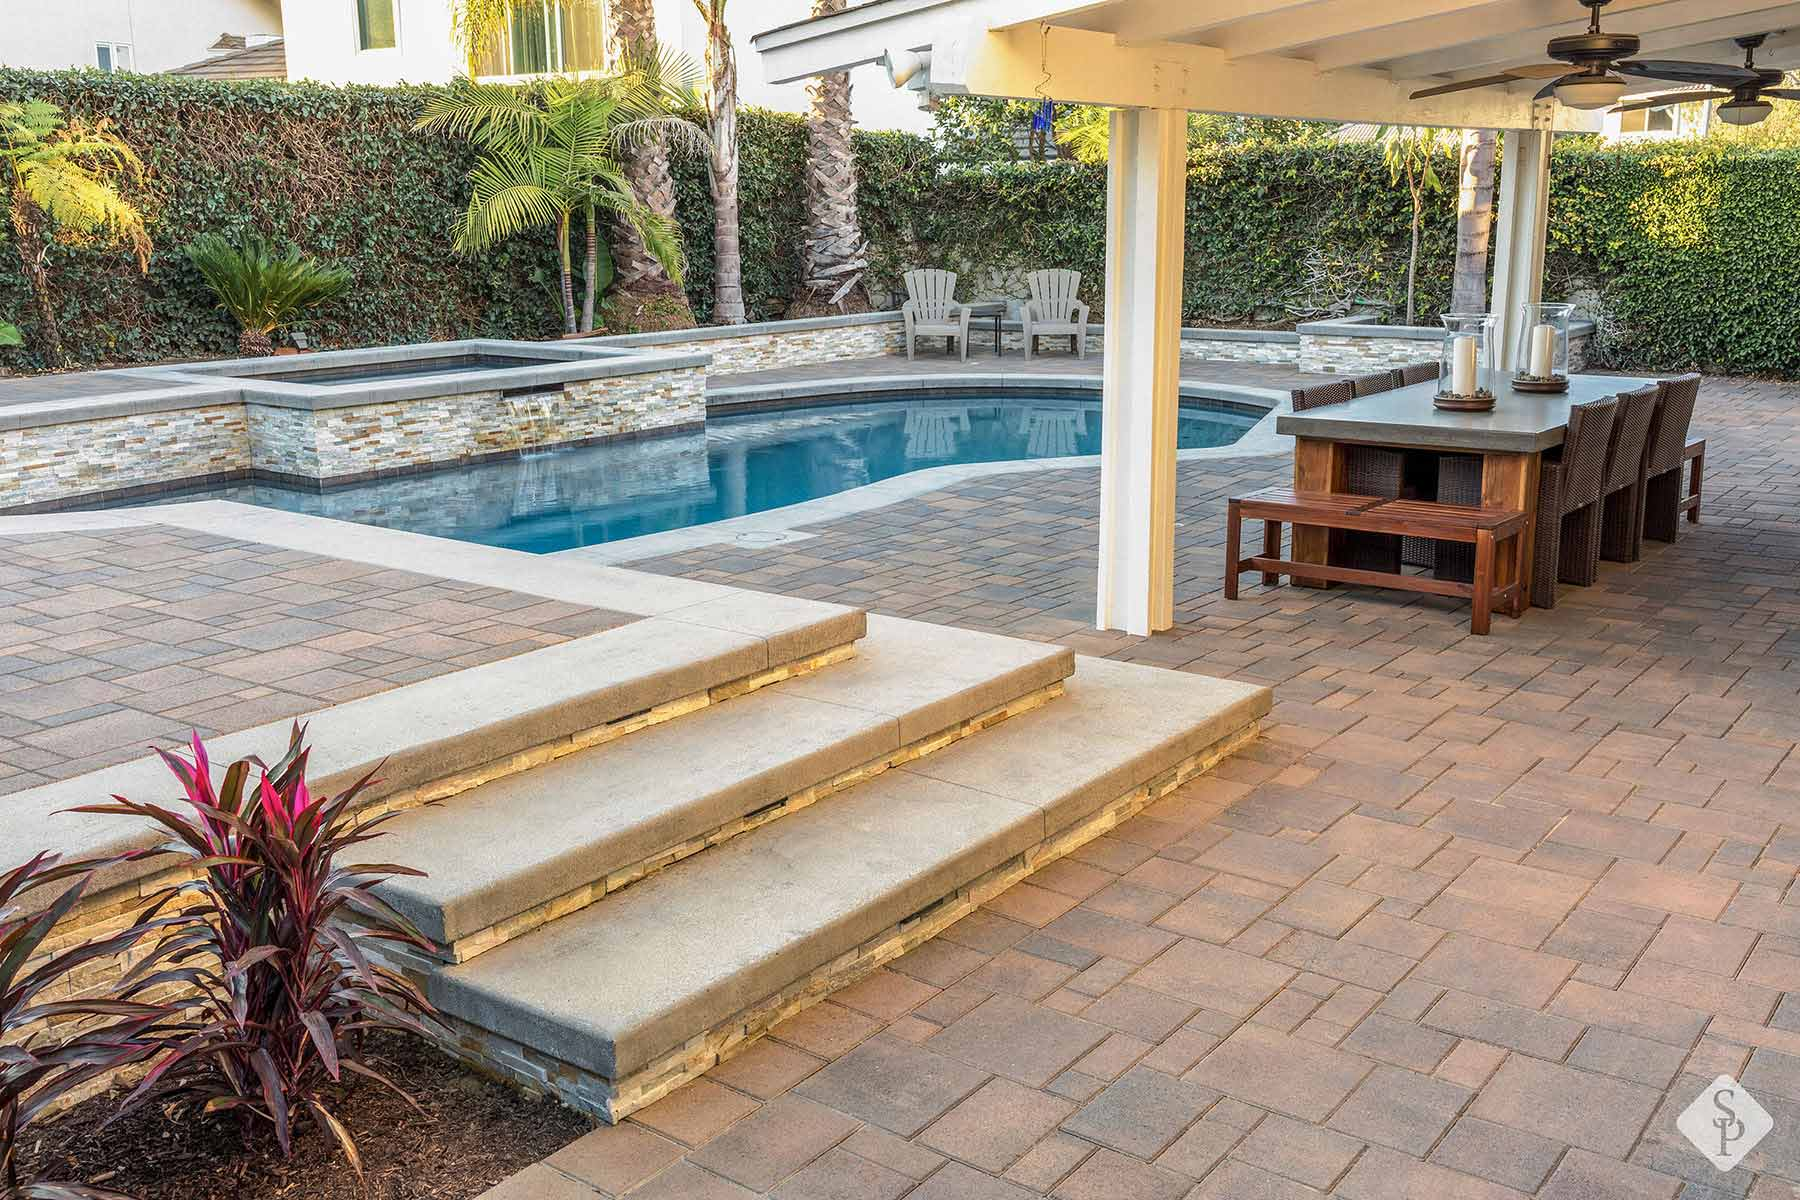 Many materials are available for pool surfaces, but one stands out: Pavers. Here's why: